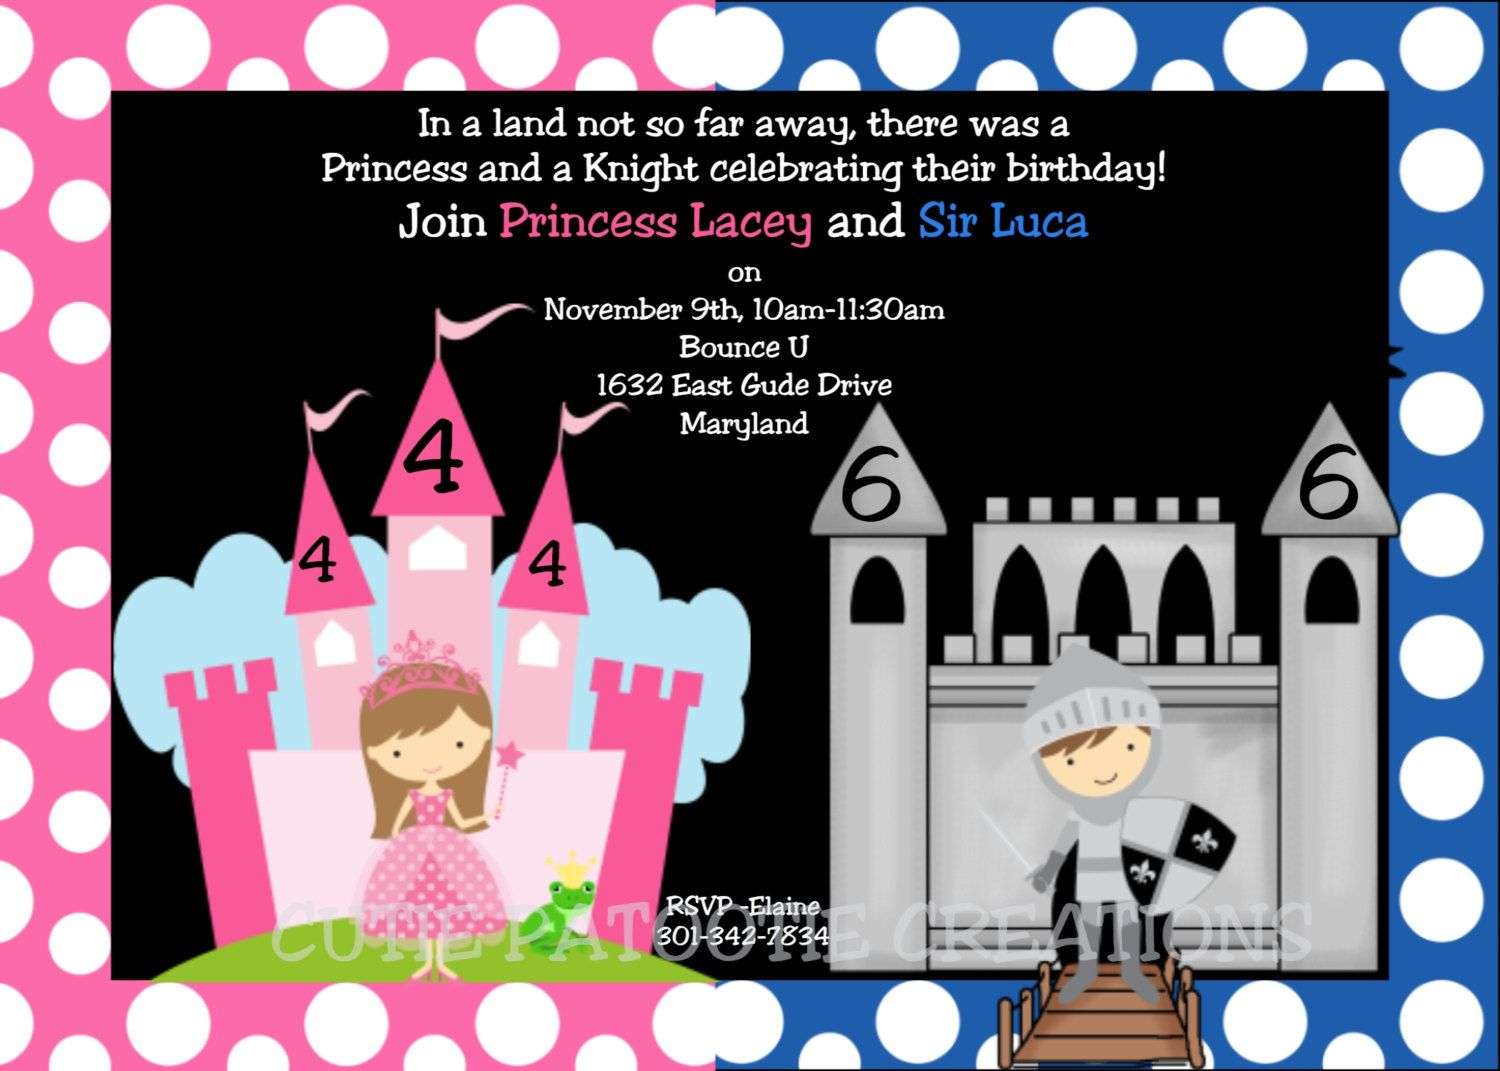 Princess knight birthday invitation party for twins or siblings knight princess birthday invitation princess knight birthday party invitations printable or printed filmwisefo Choice Image